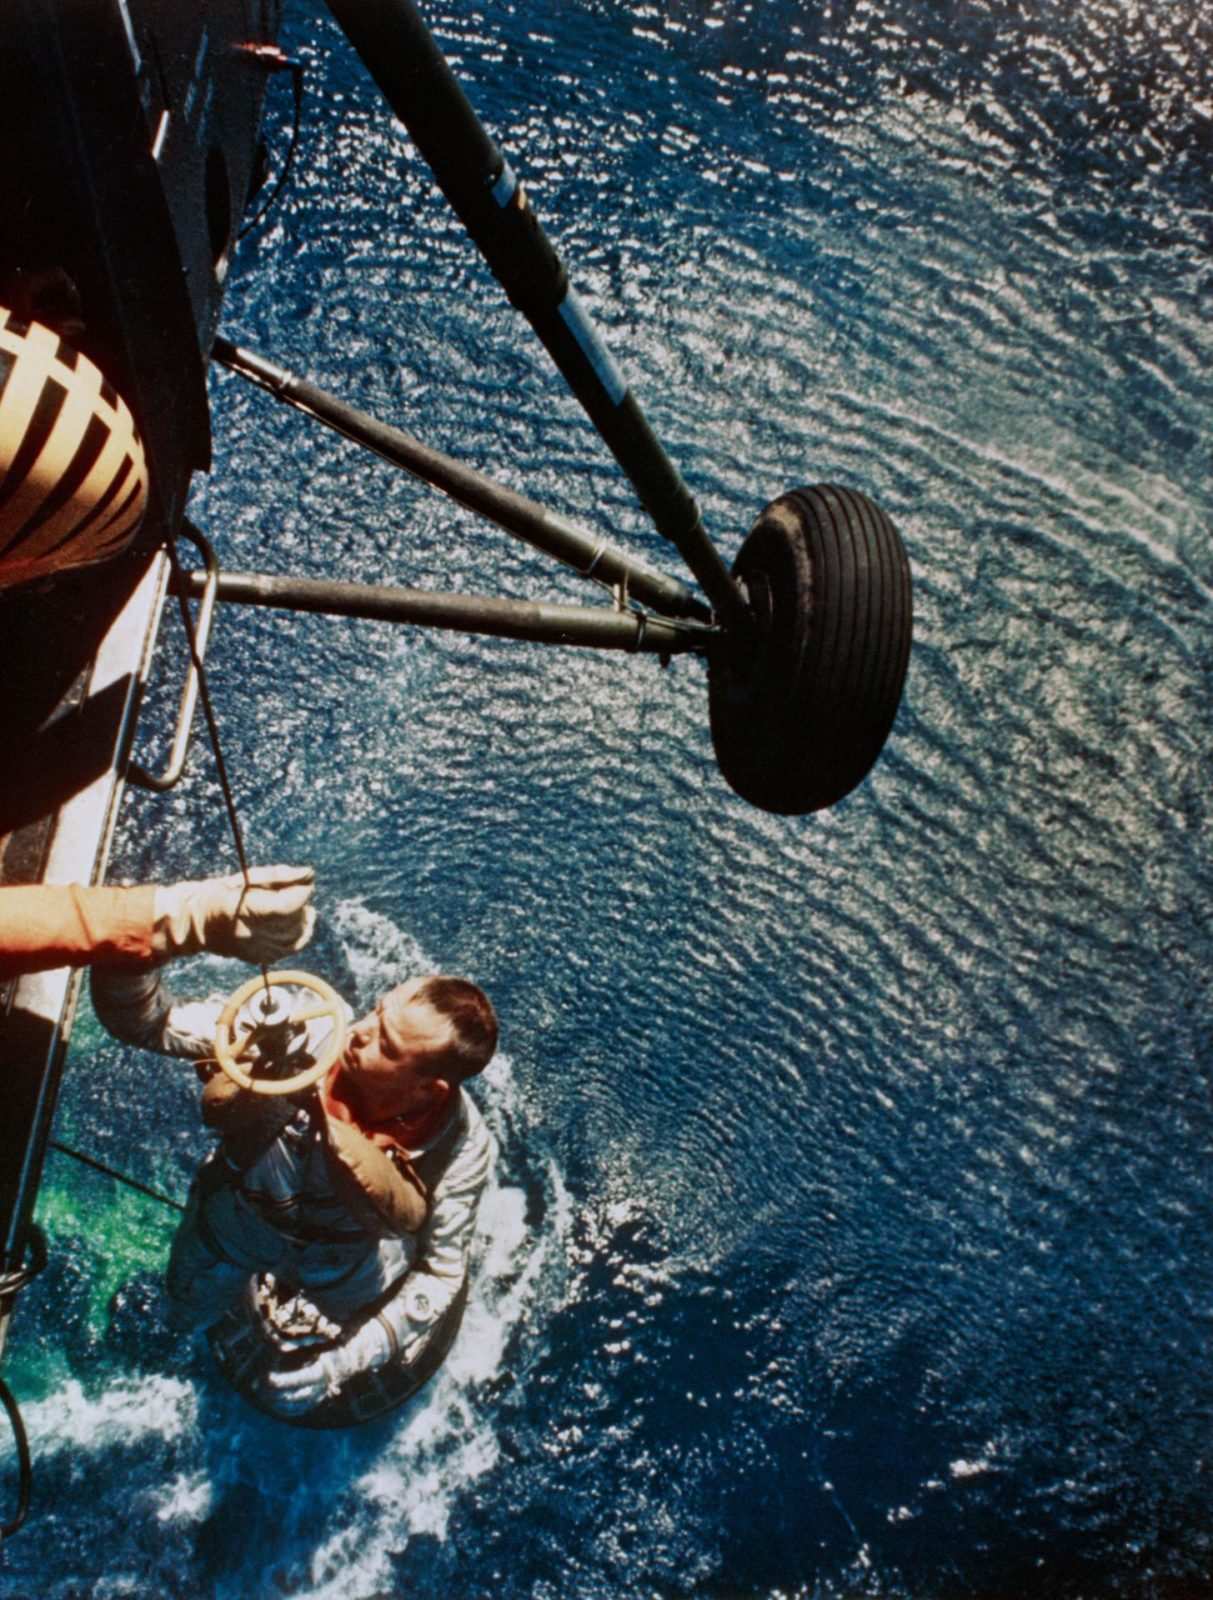 Astronaut Alan Shepard is rescued by helicopter at end of MR-3 flight